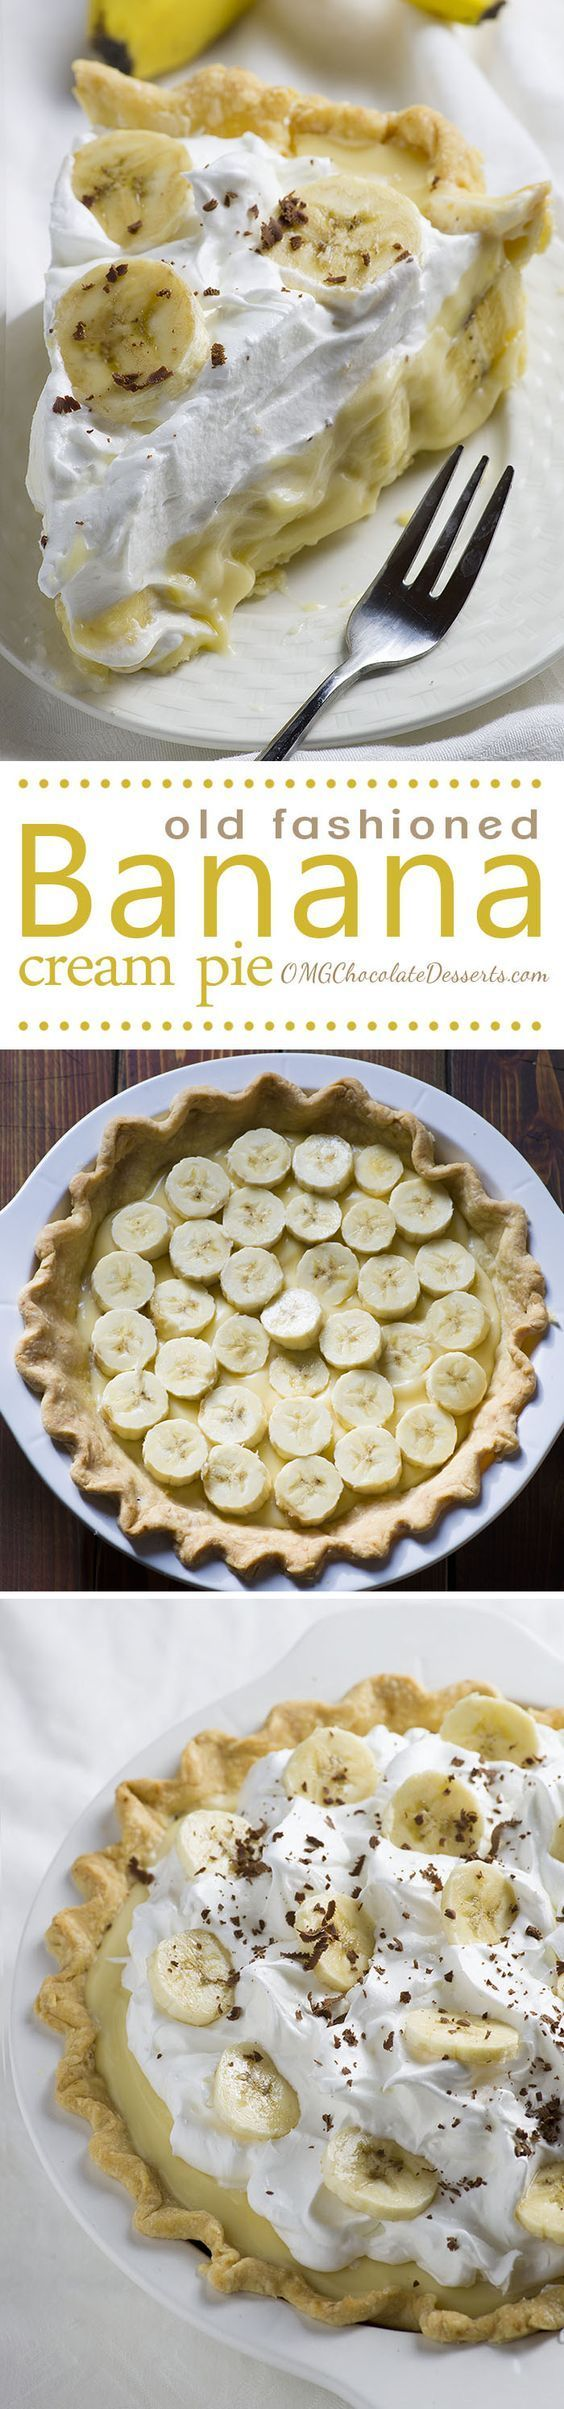 Old Fashioned Banana Cream Pie is from scratch homemade pie recipe like your grandmas used to make. A tender flaky crust piled high with bananas and creamy vanilla pudding. DELICIOUS!!!